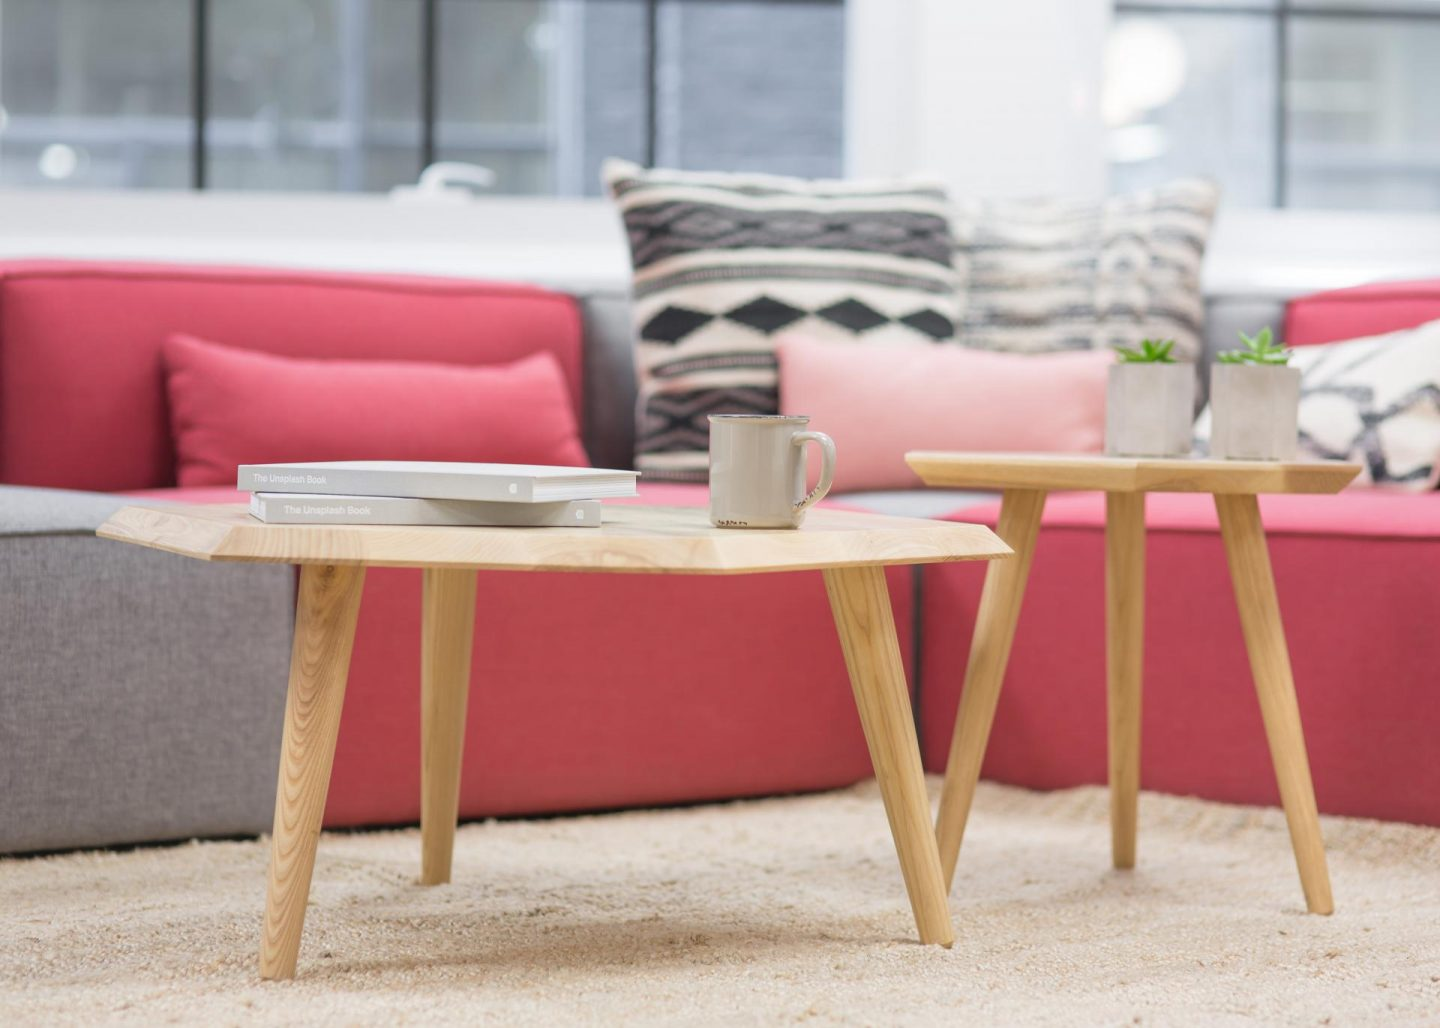 Getting wood to match when you're buying new furniture